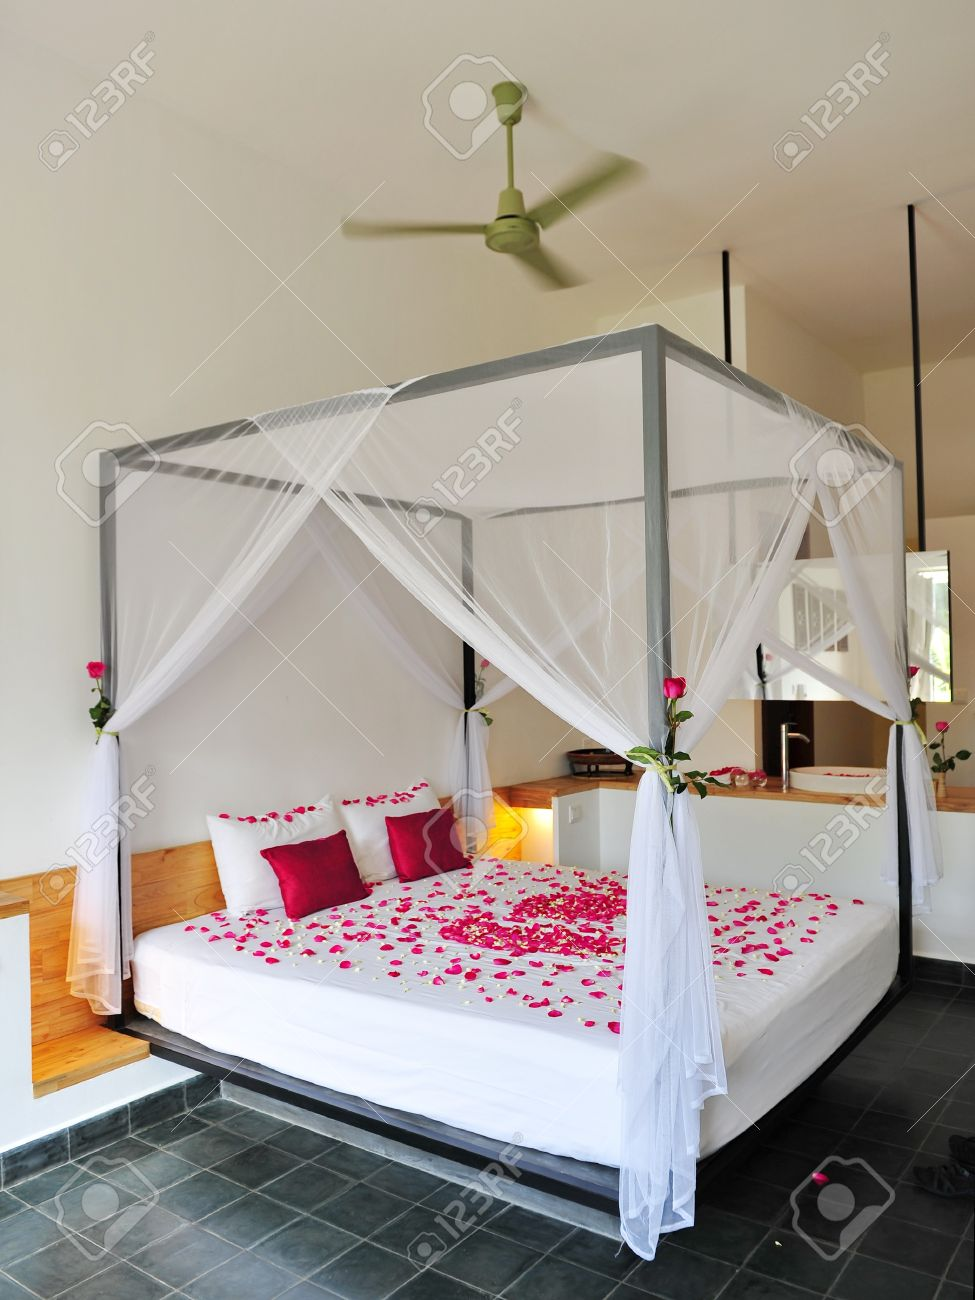 Favorito Letto Matrimoniale Romantico GO57 » Regardsdefemmes EG41